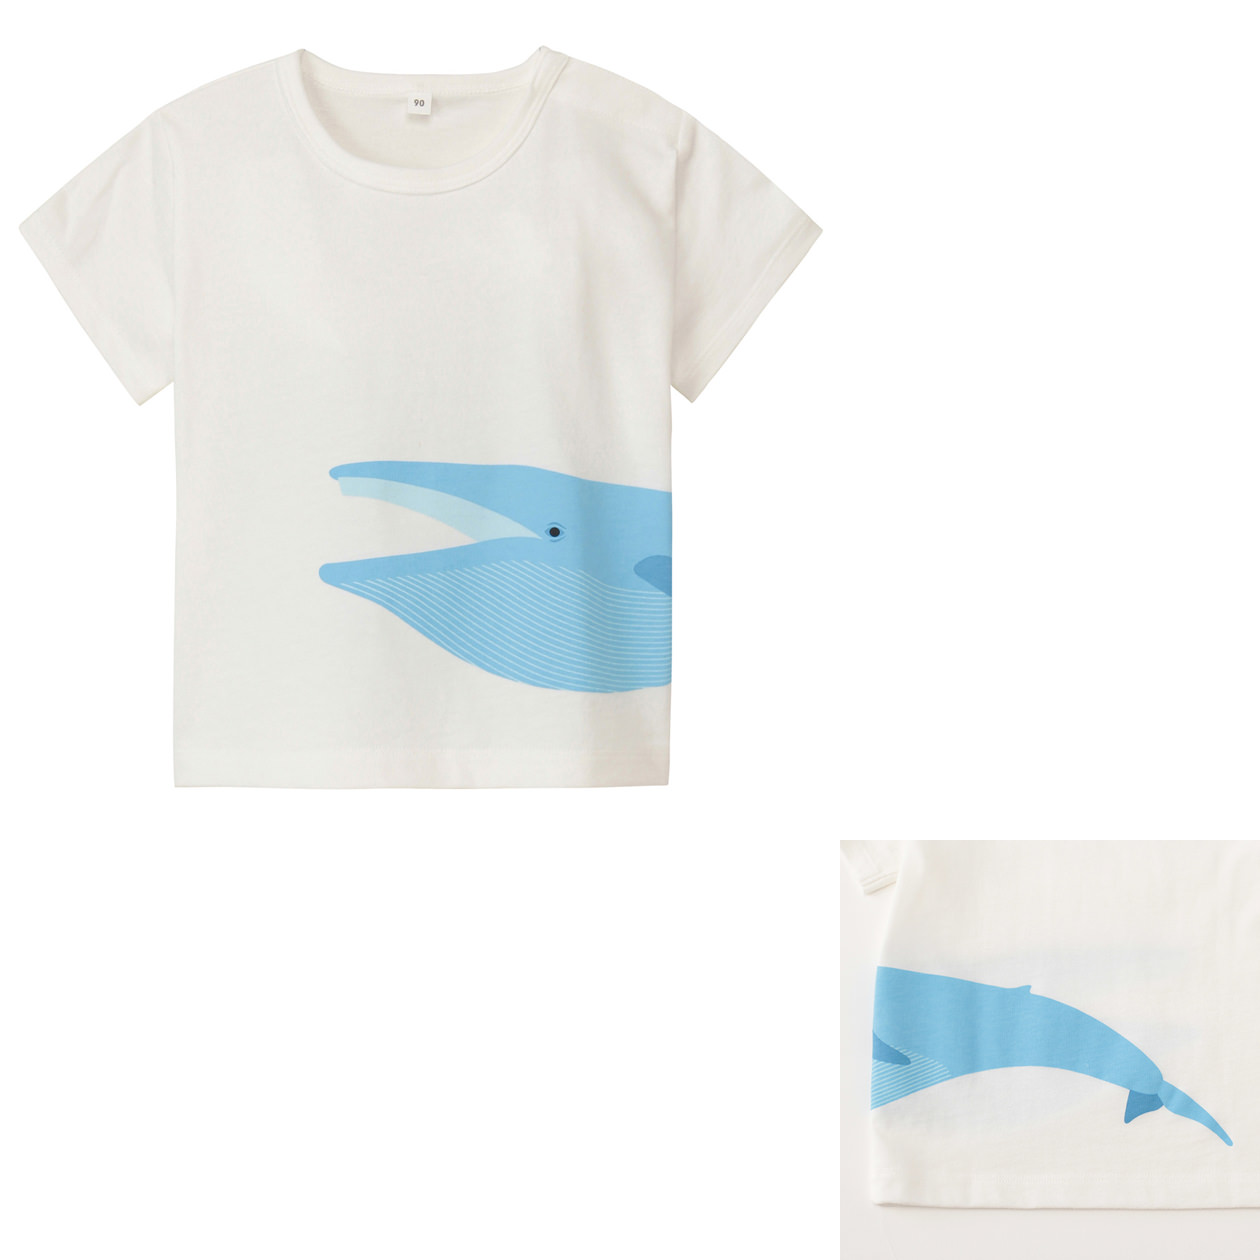 Organic cotton printed t shirt baby 90 blue whale muji for Sustainable t shirt printing